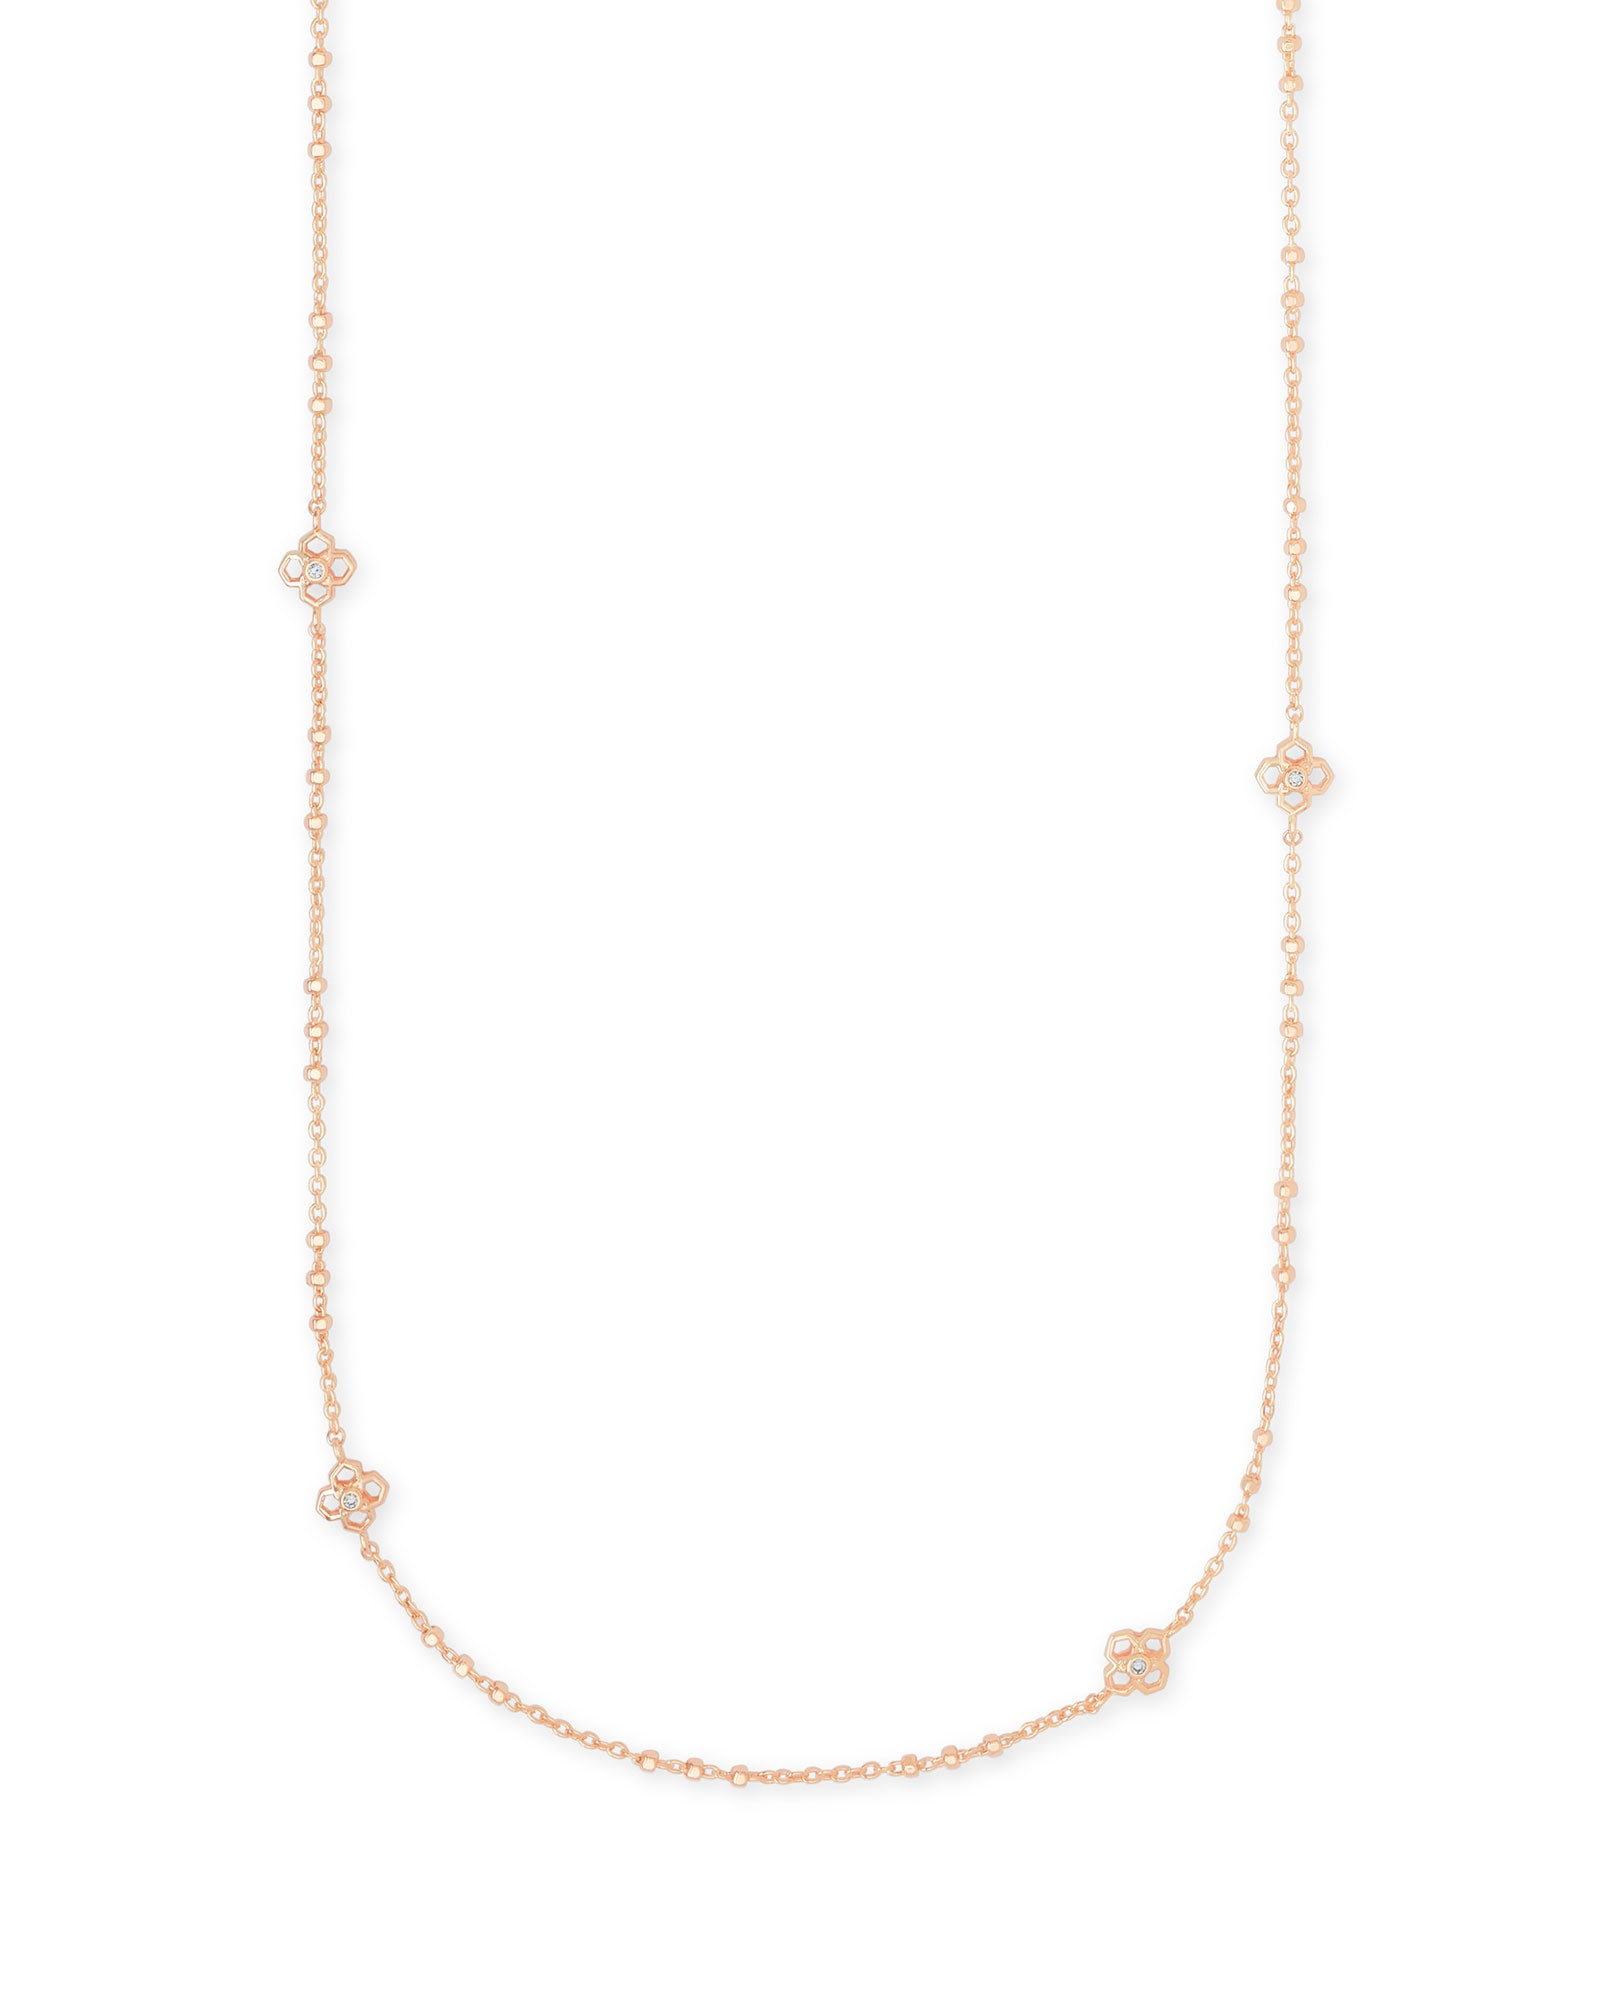 Kendra Scott Rue Long Strand Necklace - Showroom56